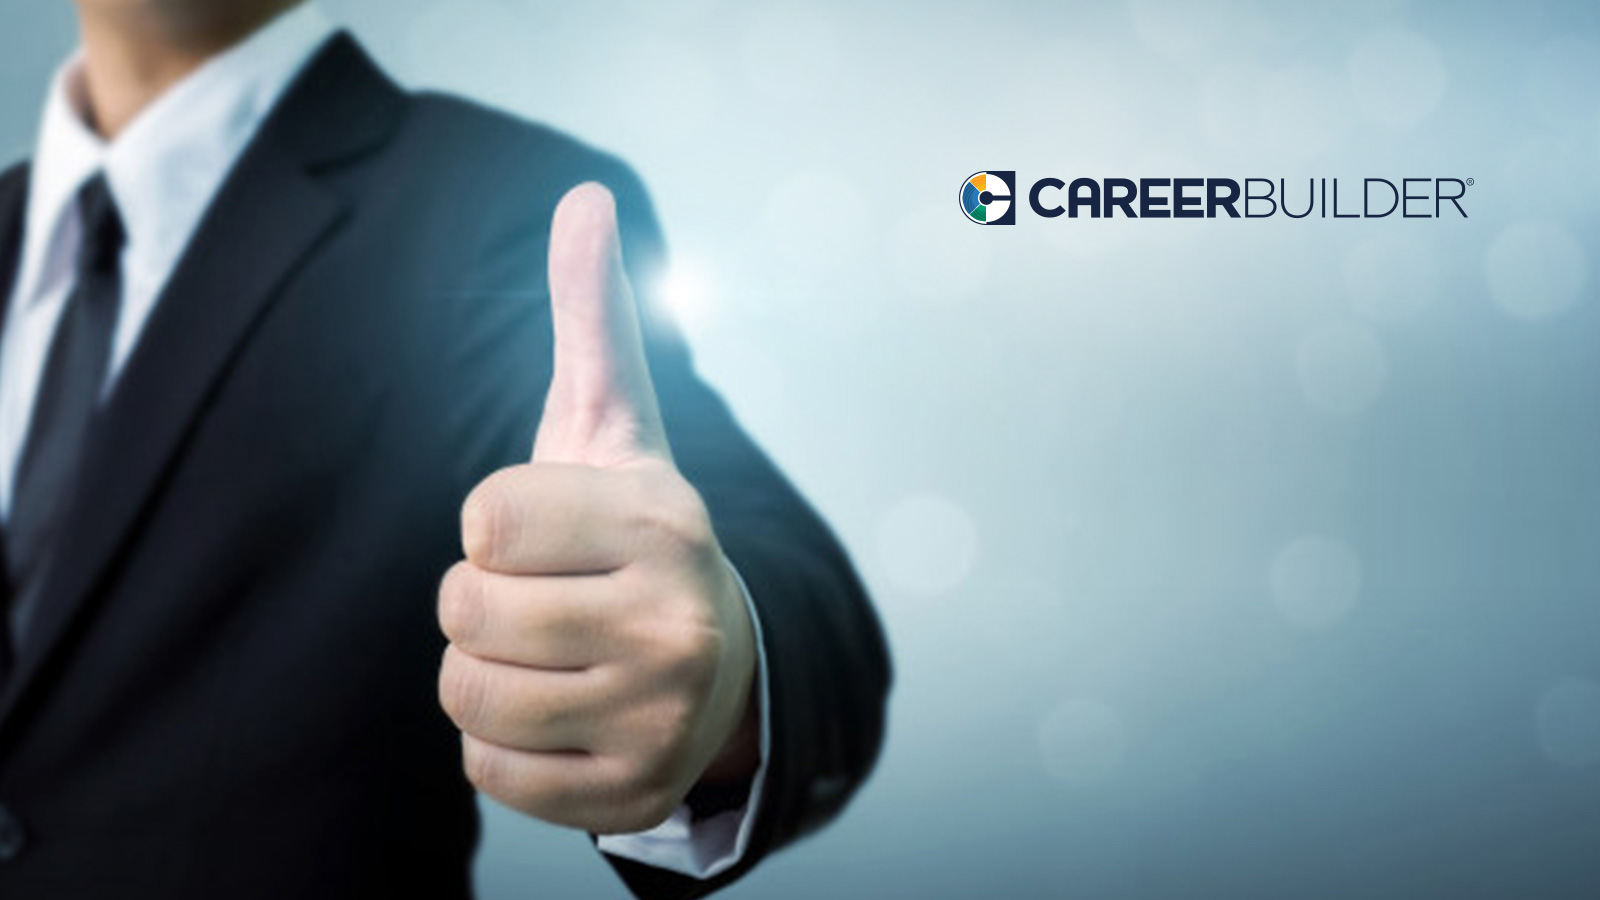 CareerBuilder Employment Screening Named Top Background Screening Provider by HRO Today Magazine